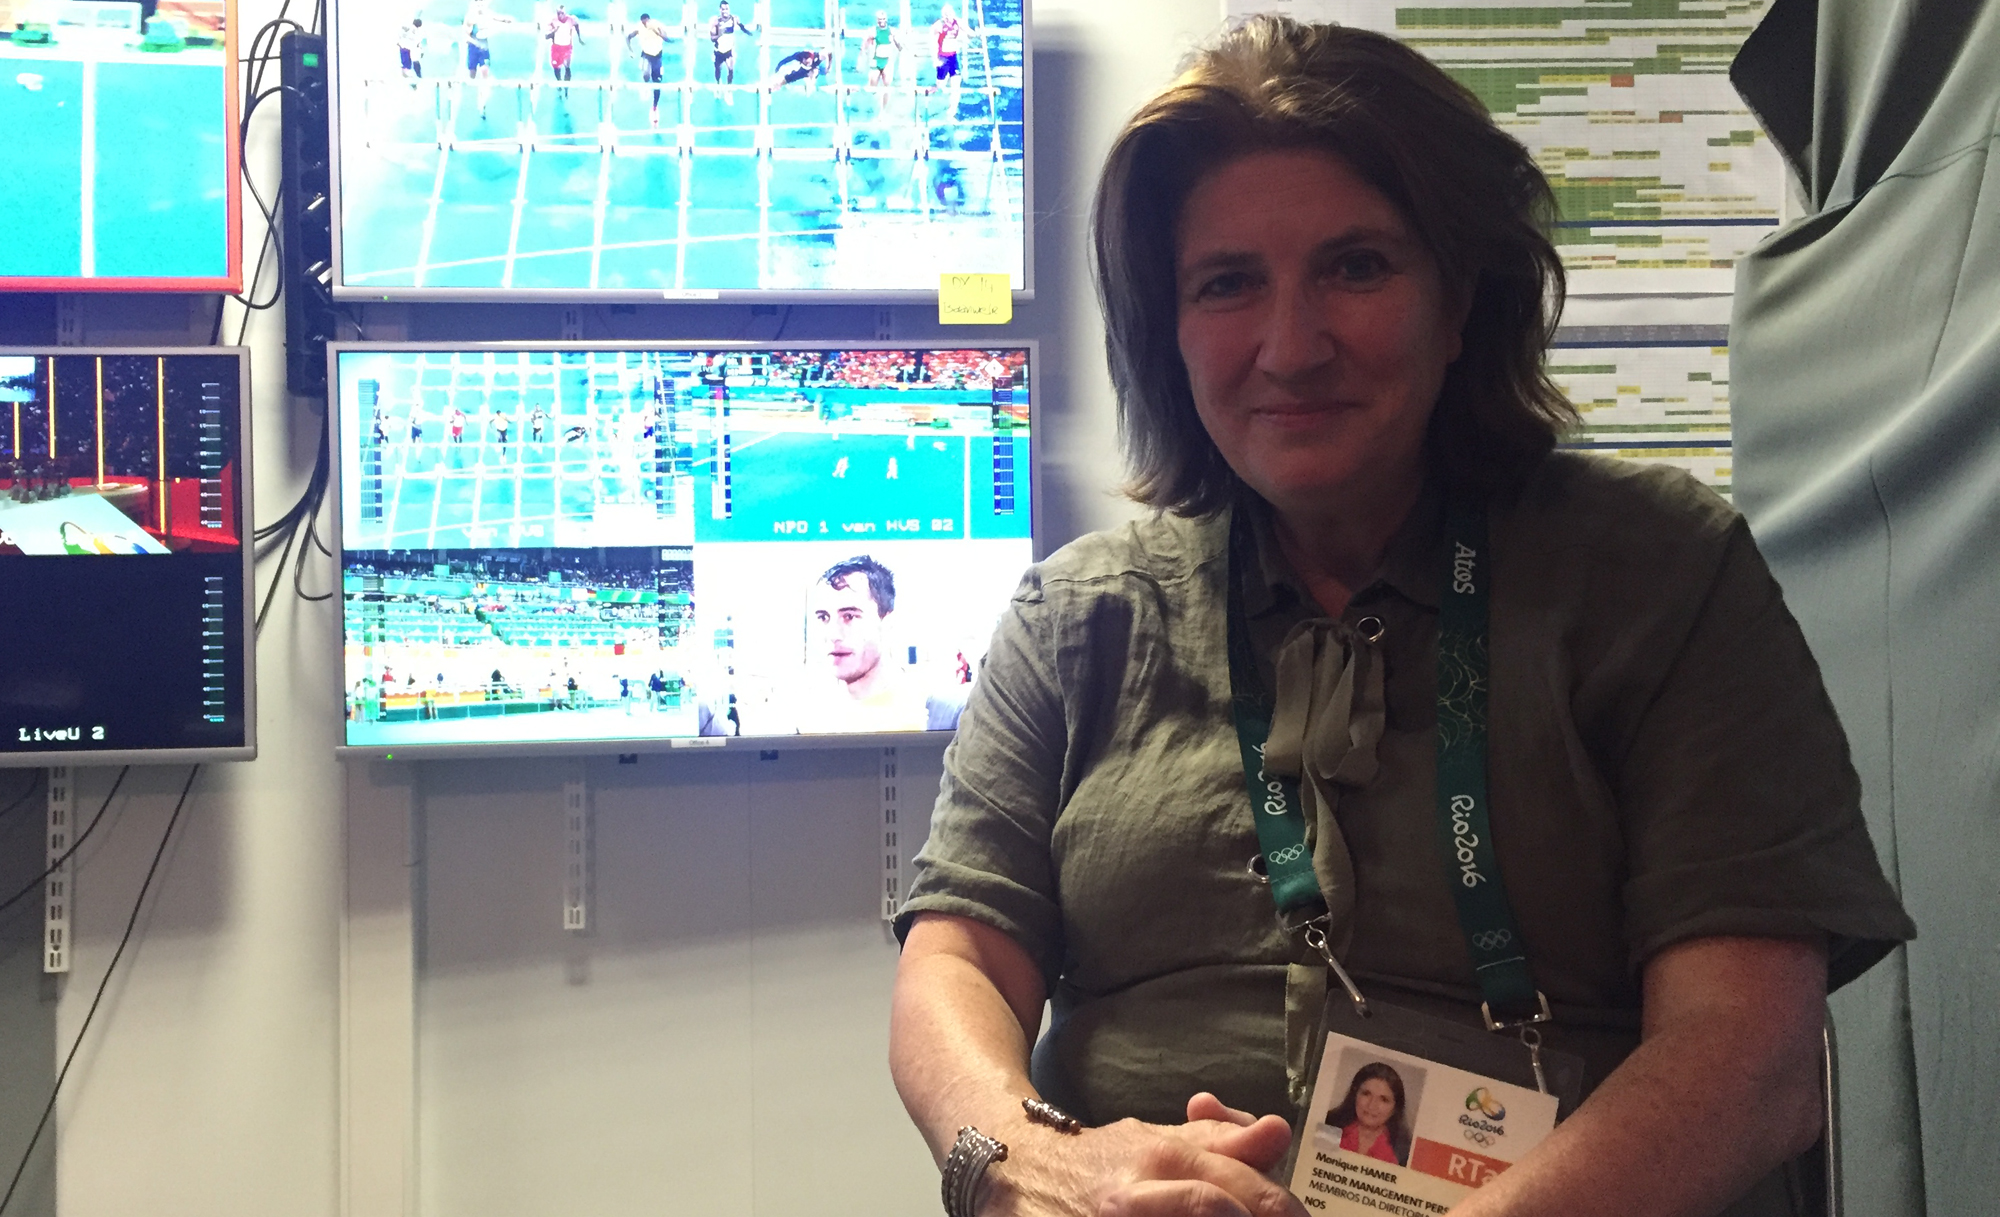 Monique Hamer, executive producer for Dutch broadcaster NOS in the network's center at the IBC in Rio.